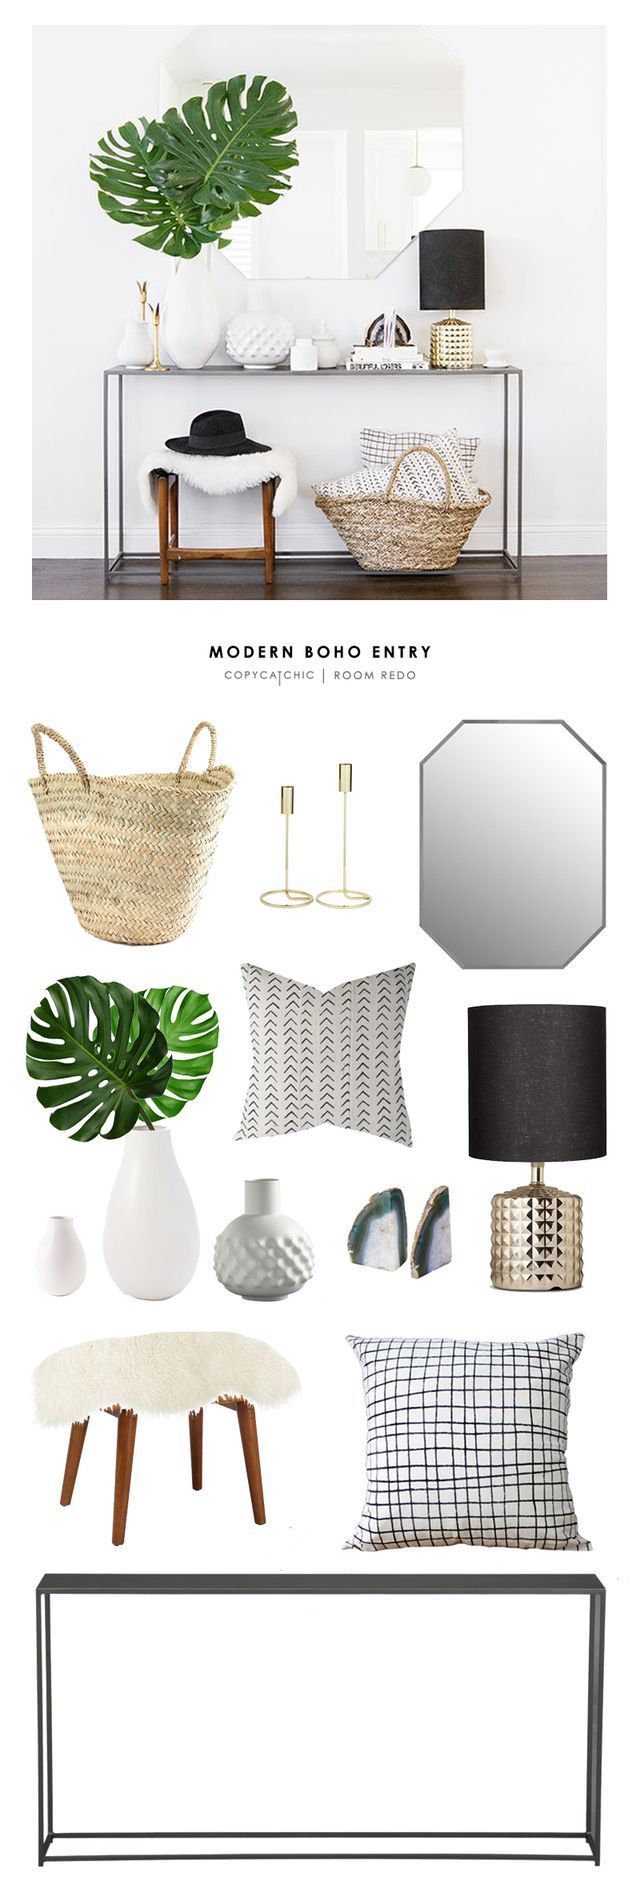 kmart australia styling - Home Decor Australia